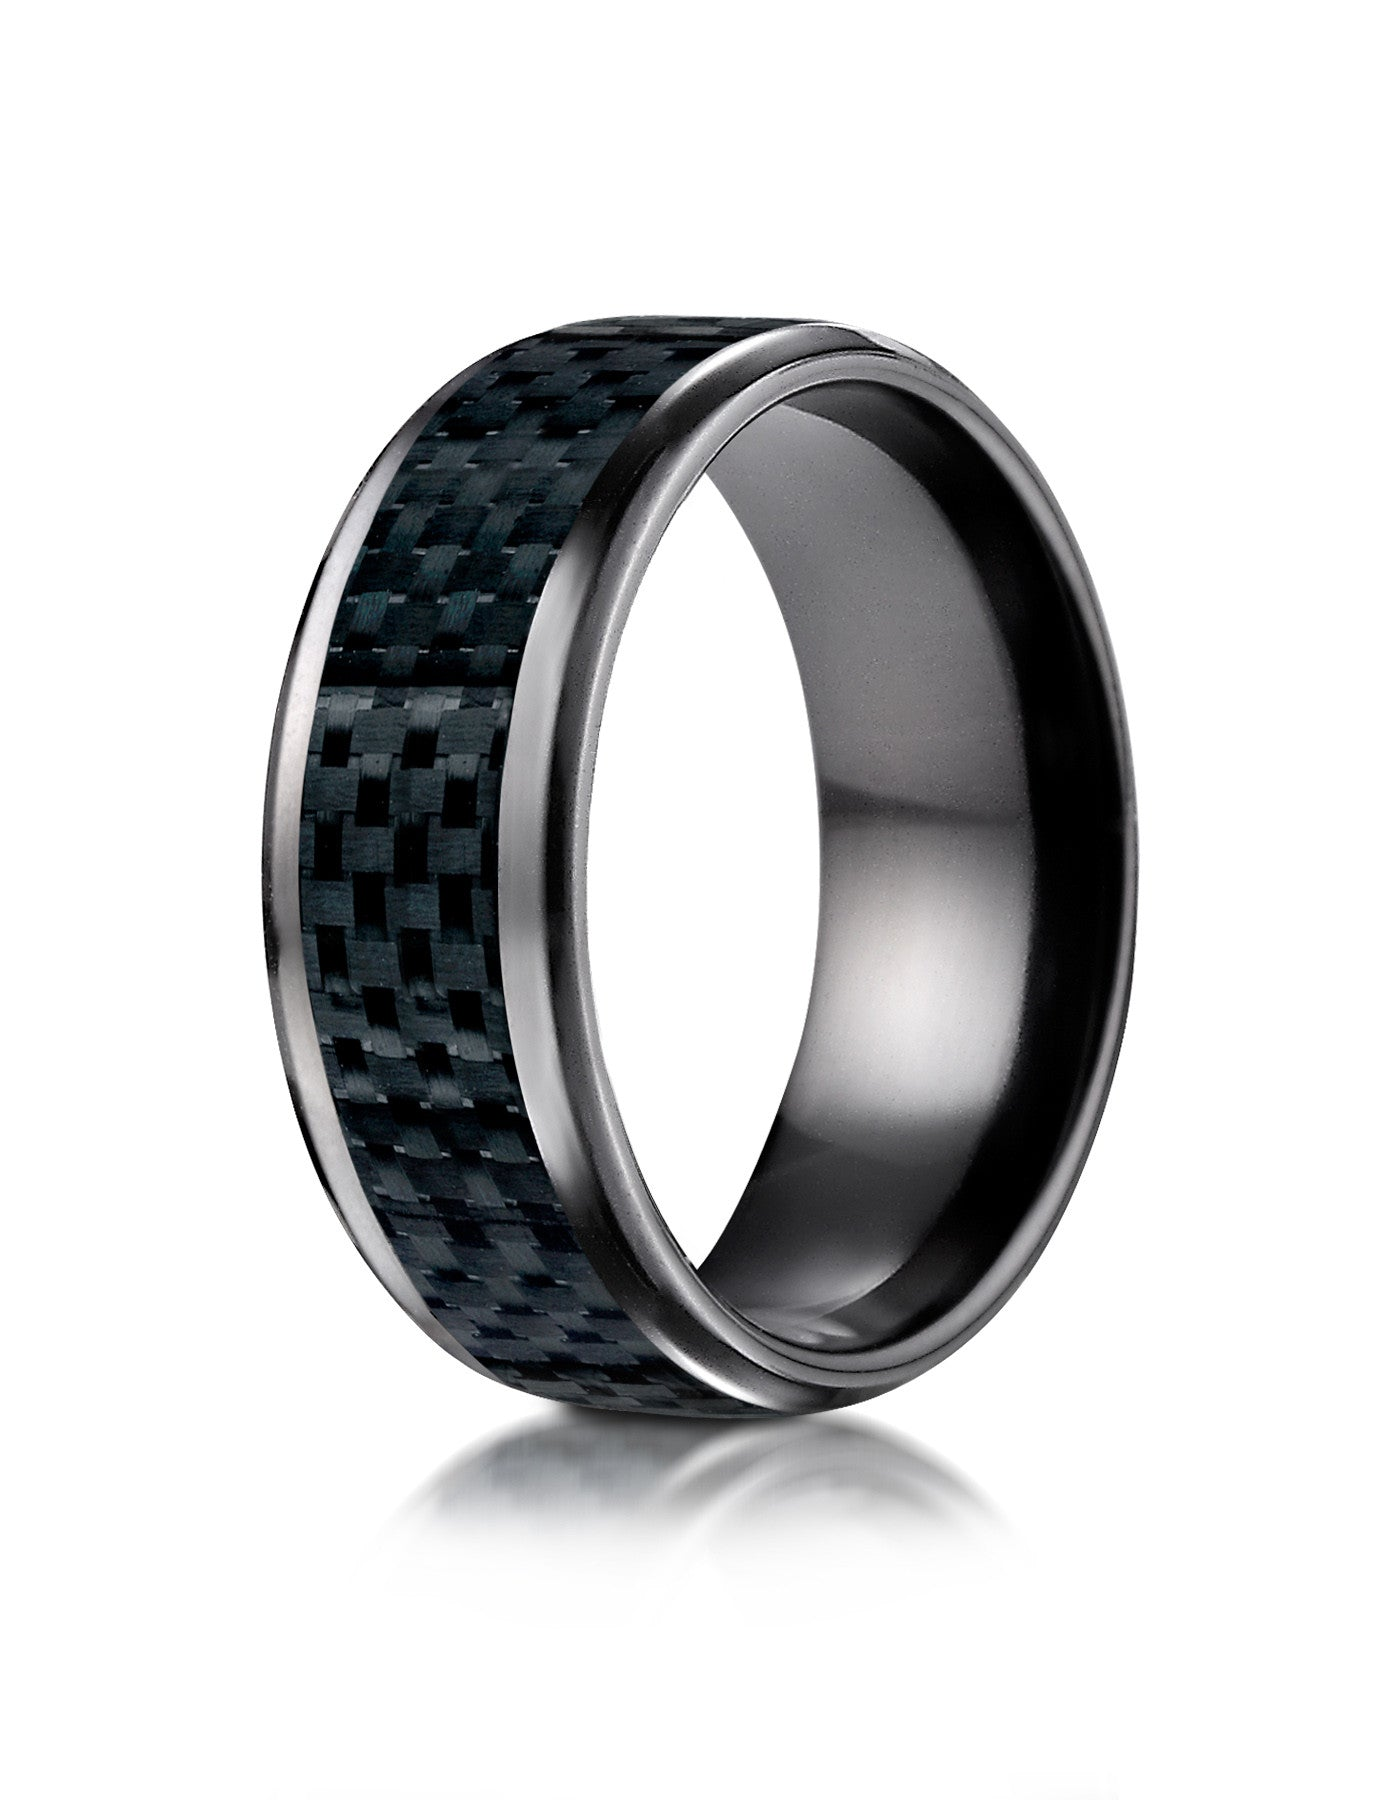 rose dp fiber carbon wedding inlay amazon beveled tungsten com edge mnh black men for plated gold rings band